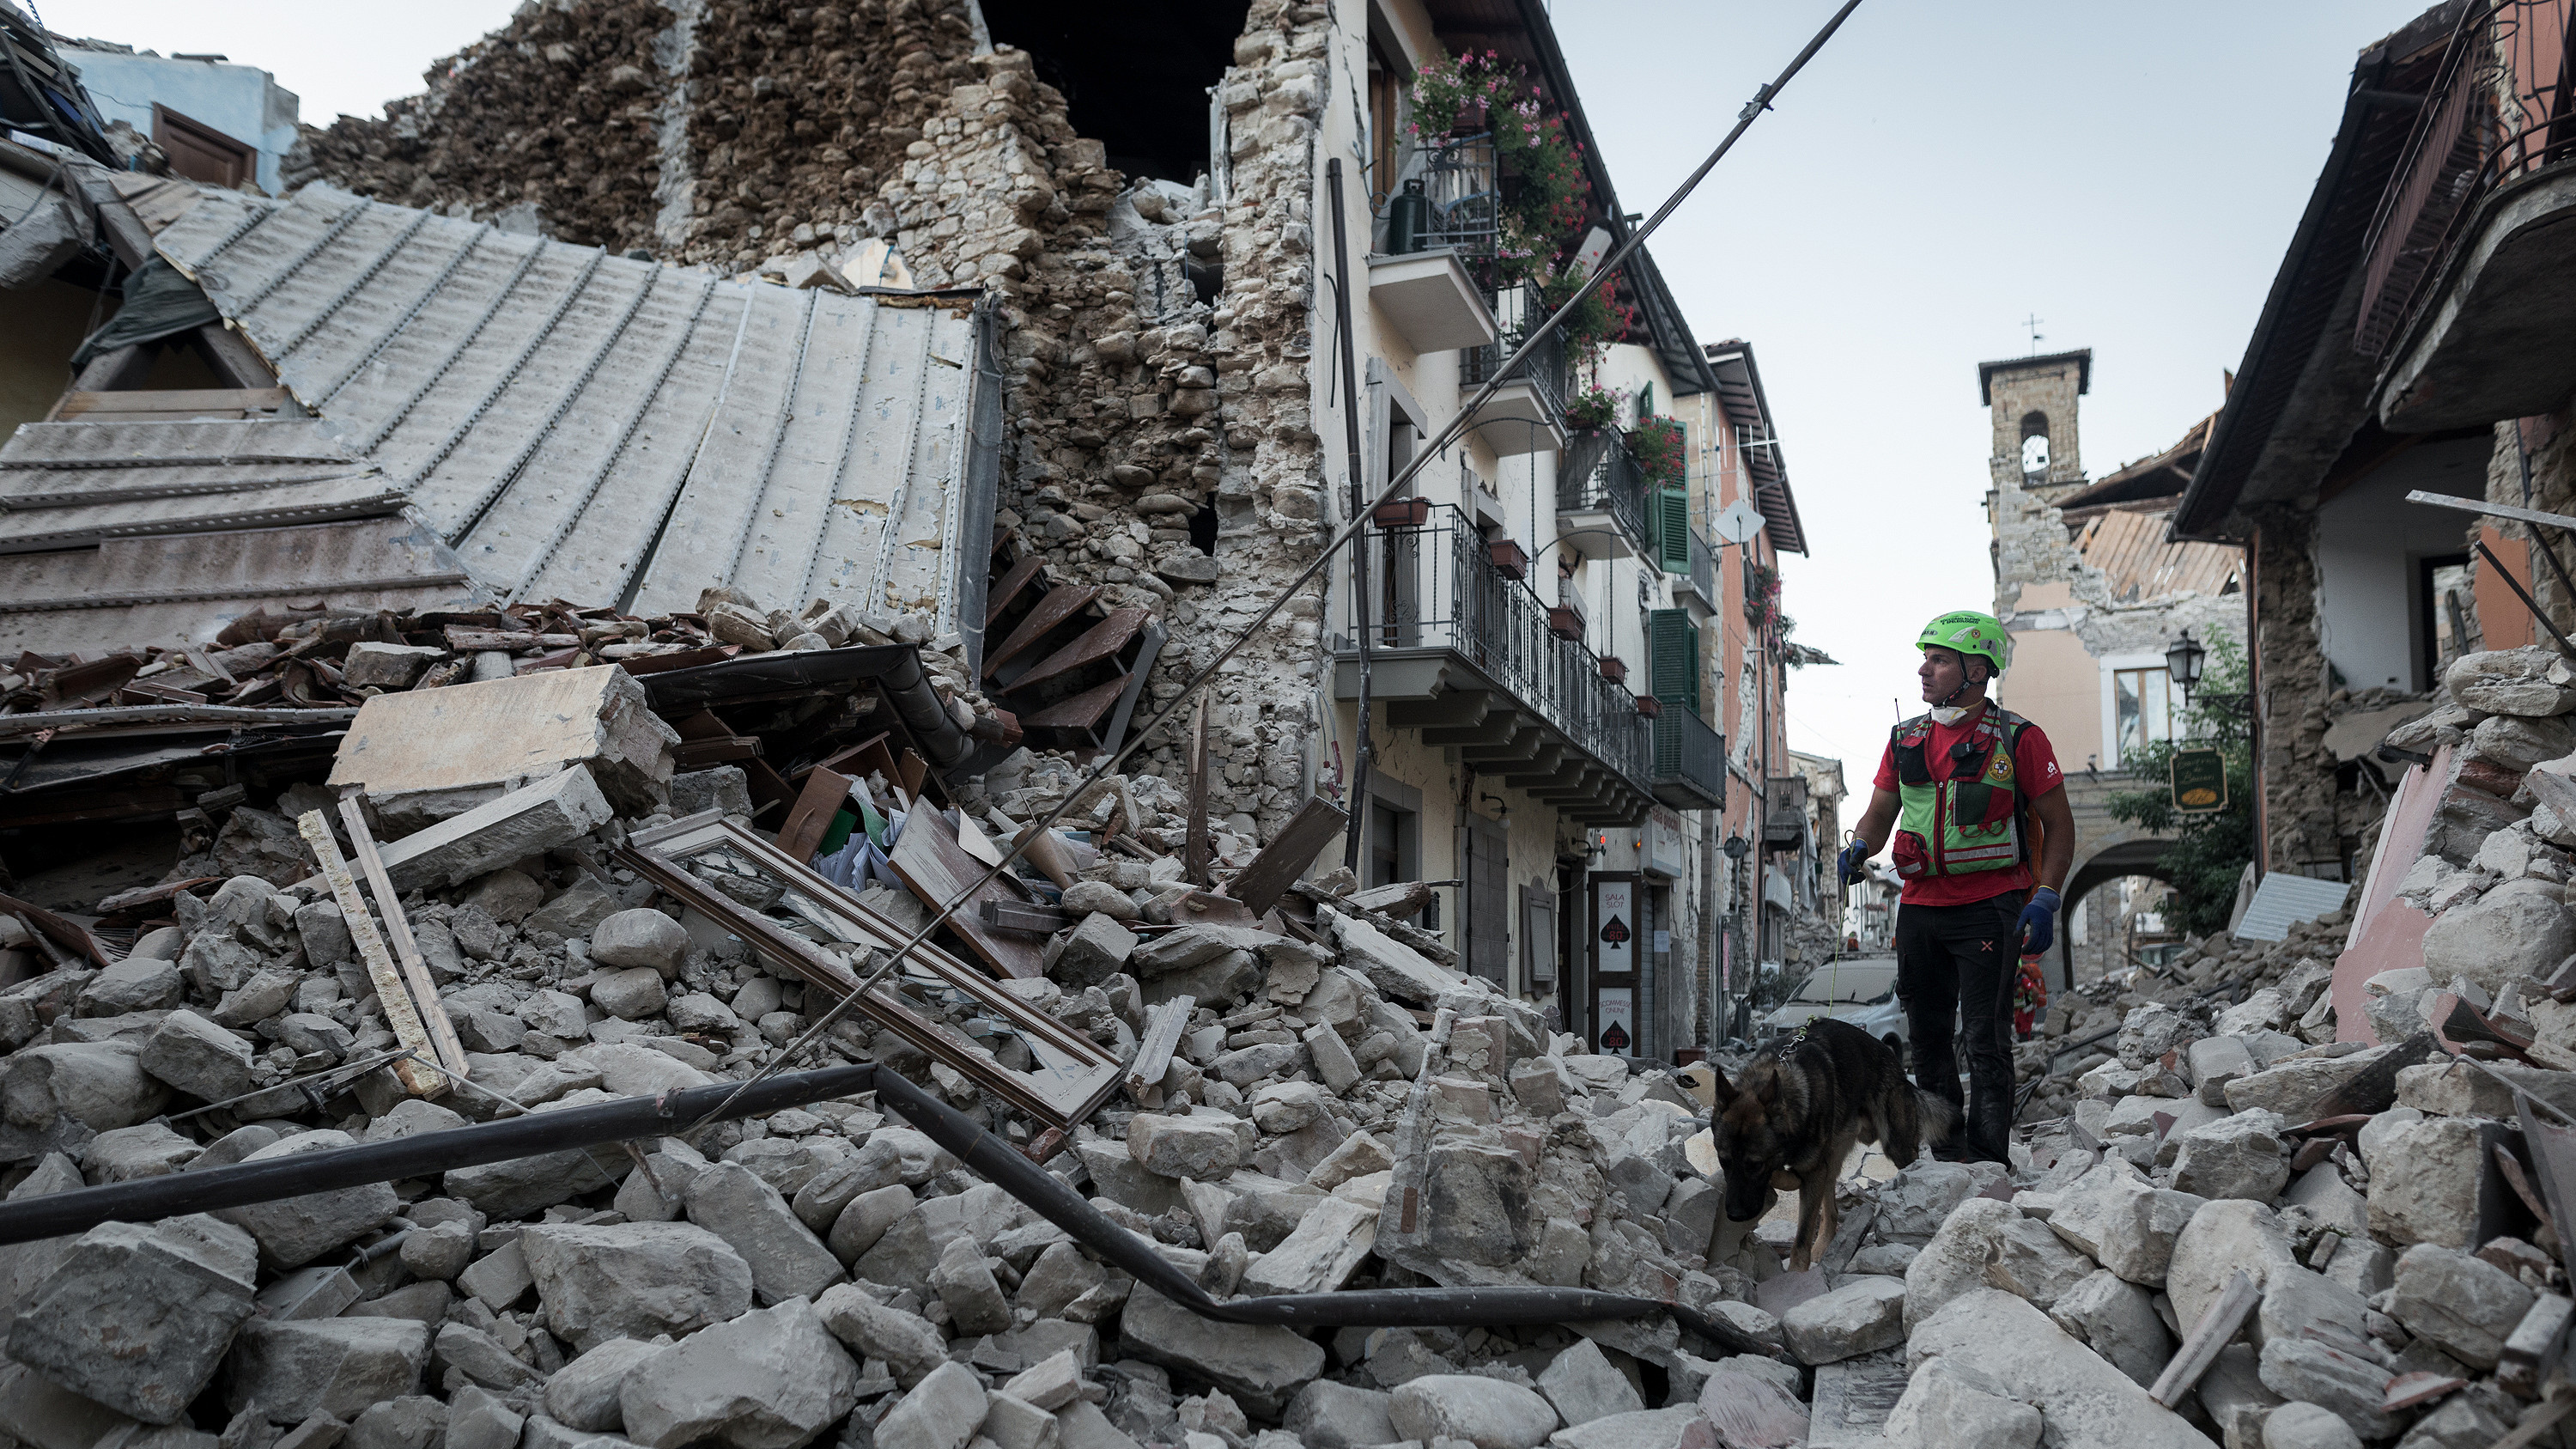 Rescue Crews Race To Find Survivors In Rubble Of Quake-Hit Italian Towns